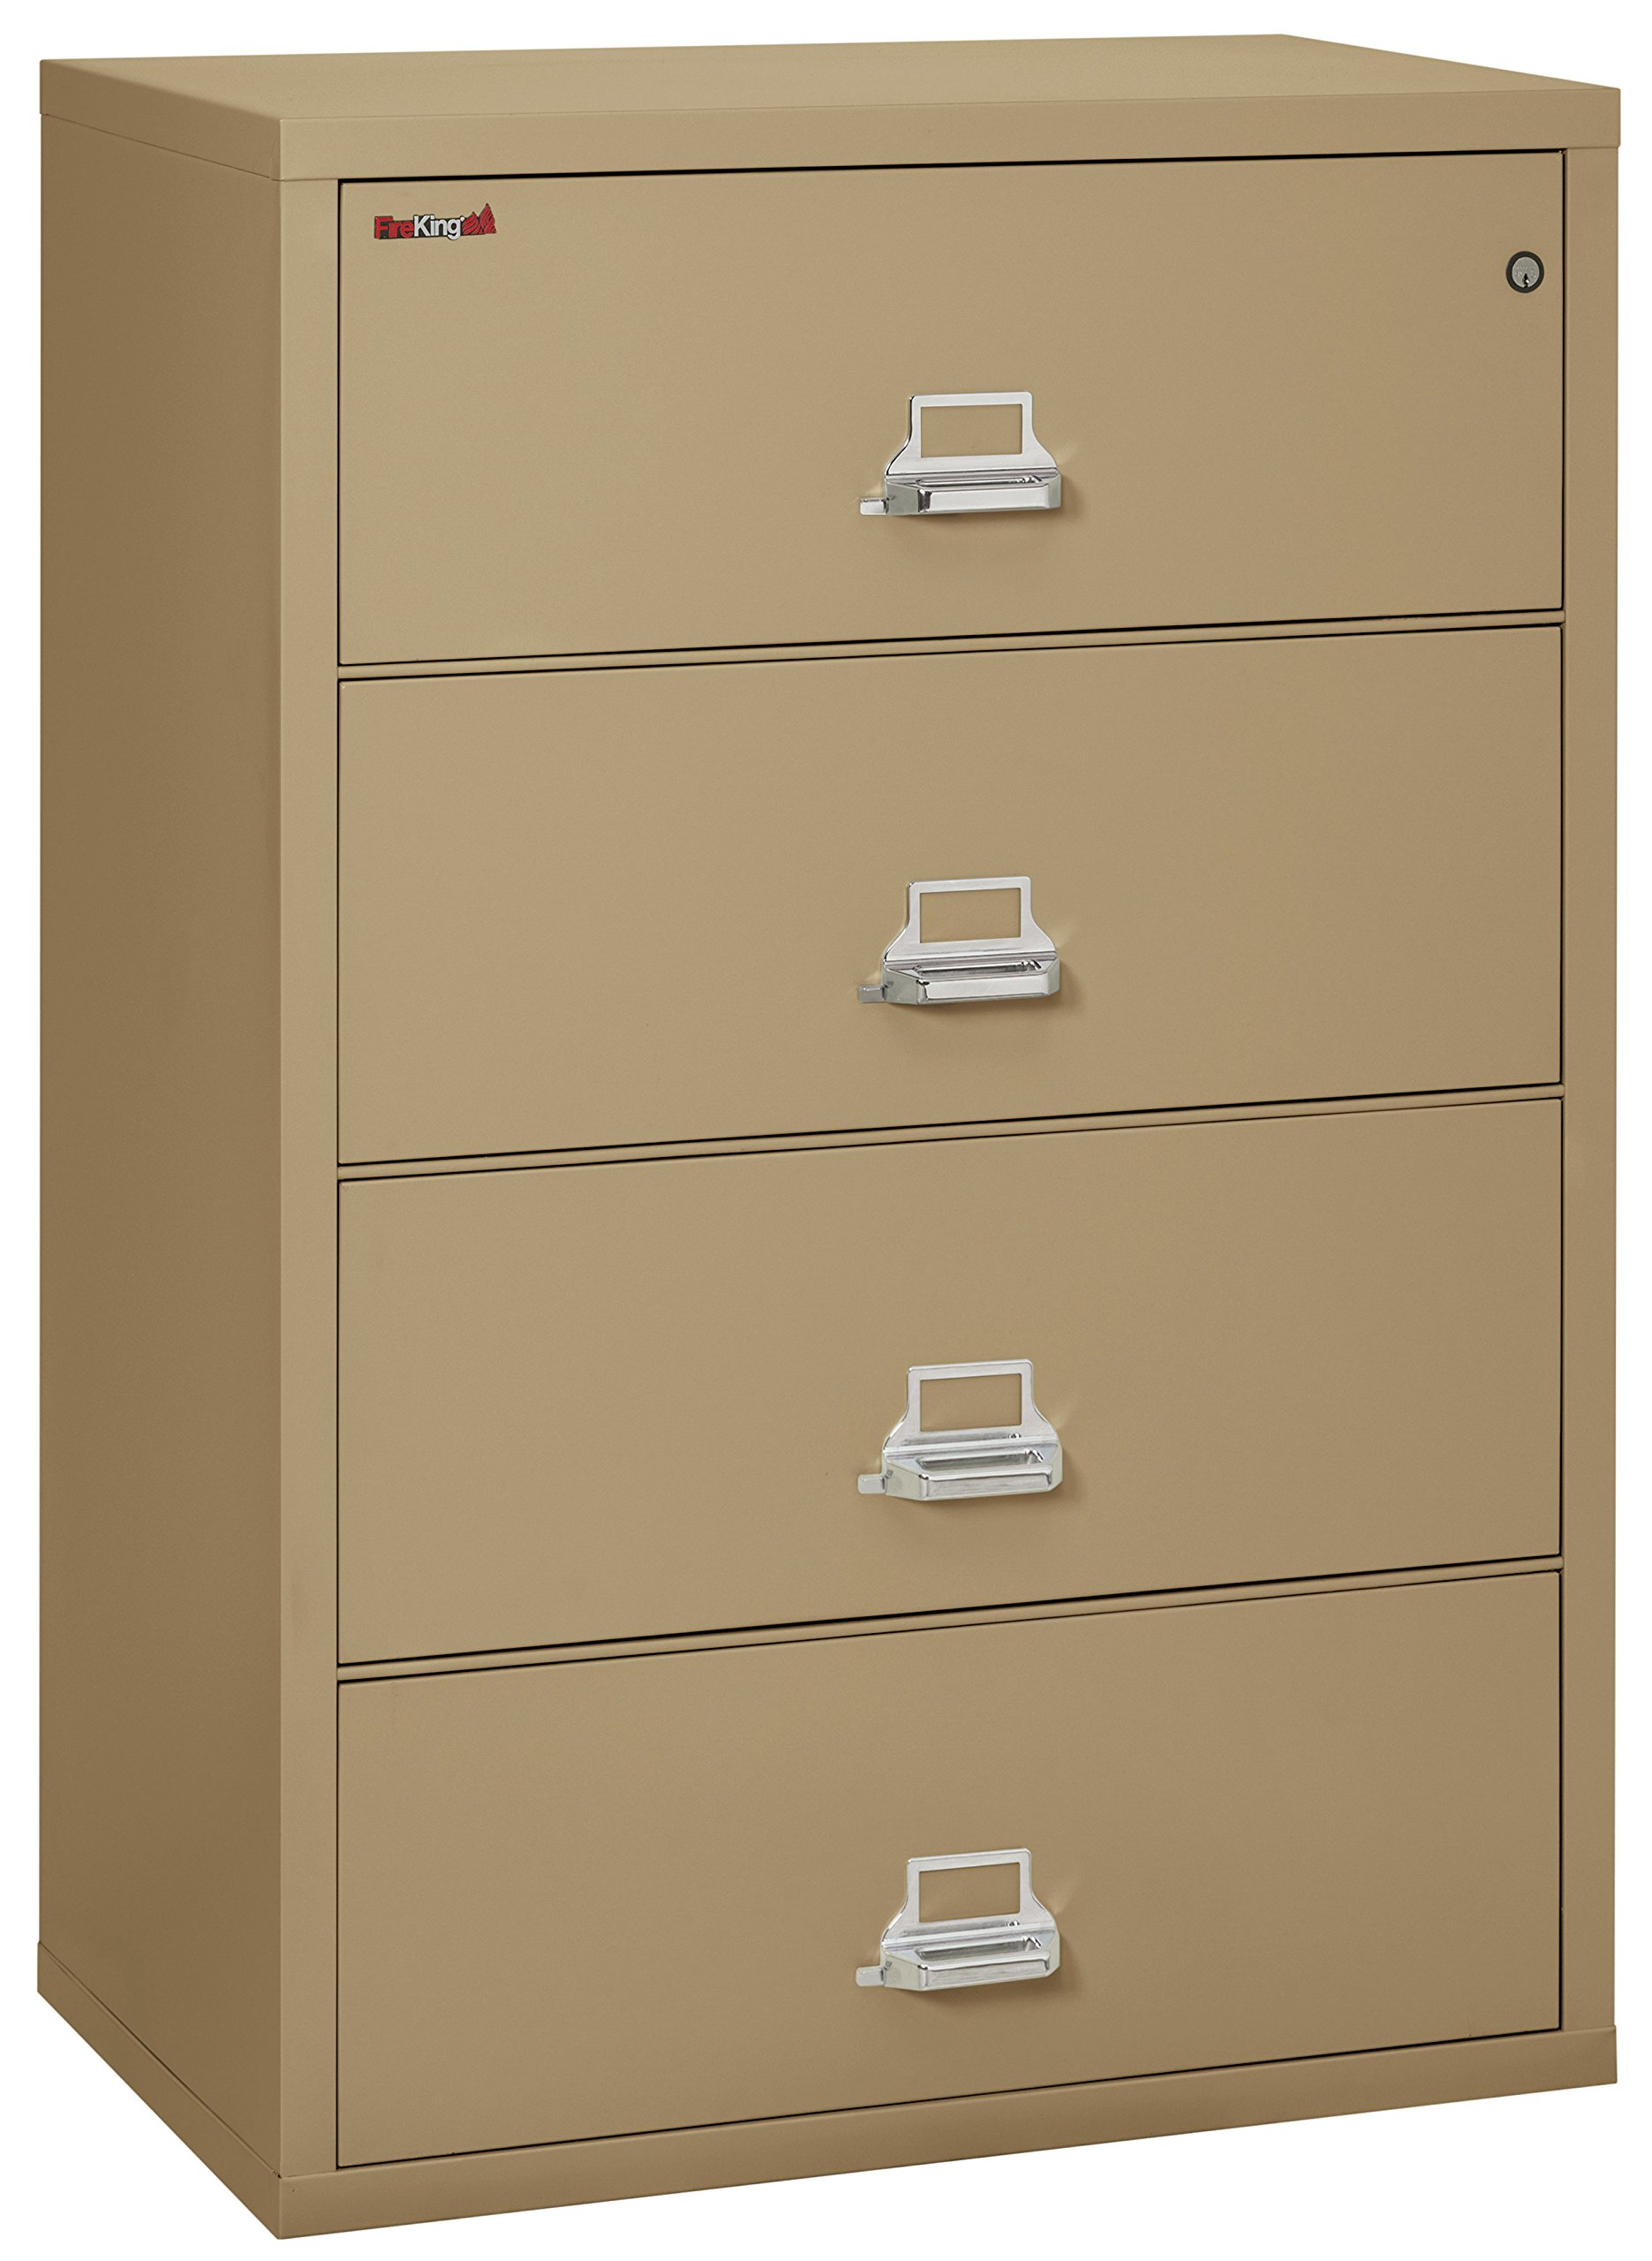 FireKing Fireproof Lateral File Cabinet (4 Drawers, Impact Resistant, Water Resistant), 38'' W x 22'' D, Sand, Made in USA by FireKing